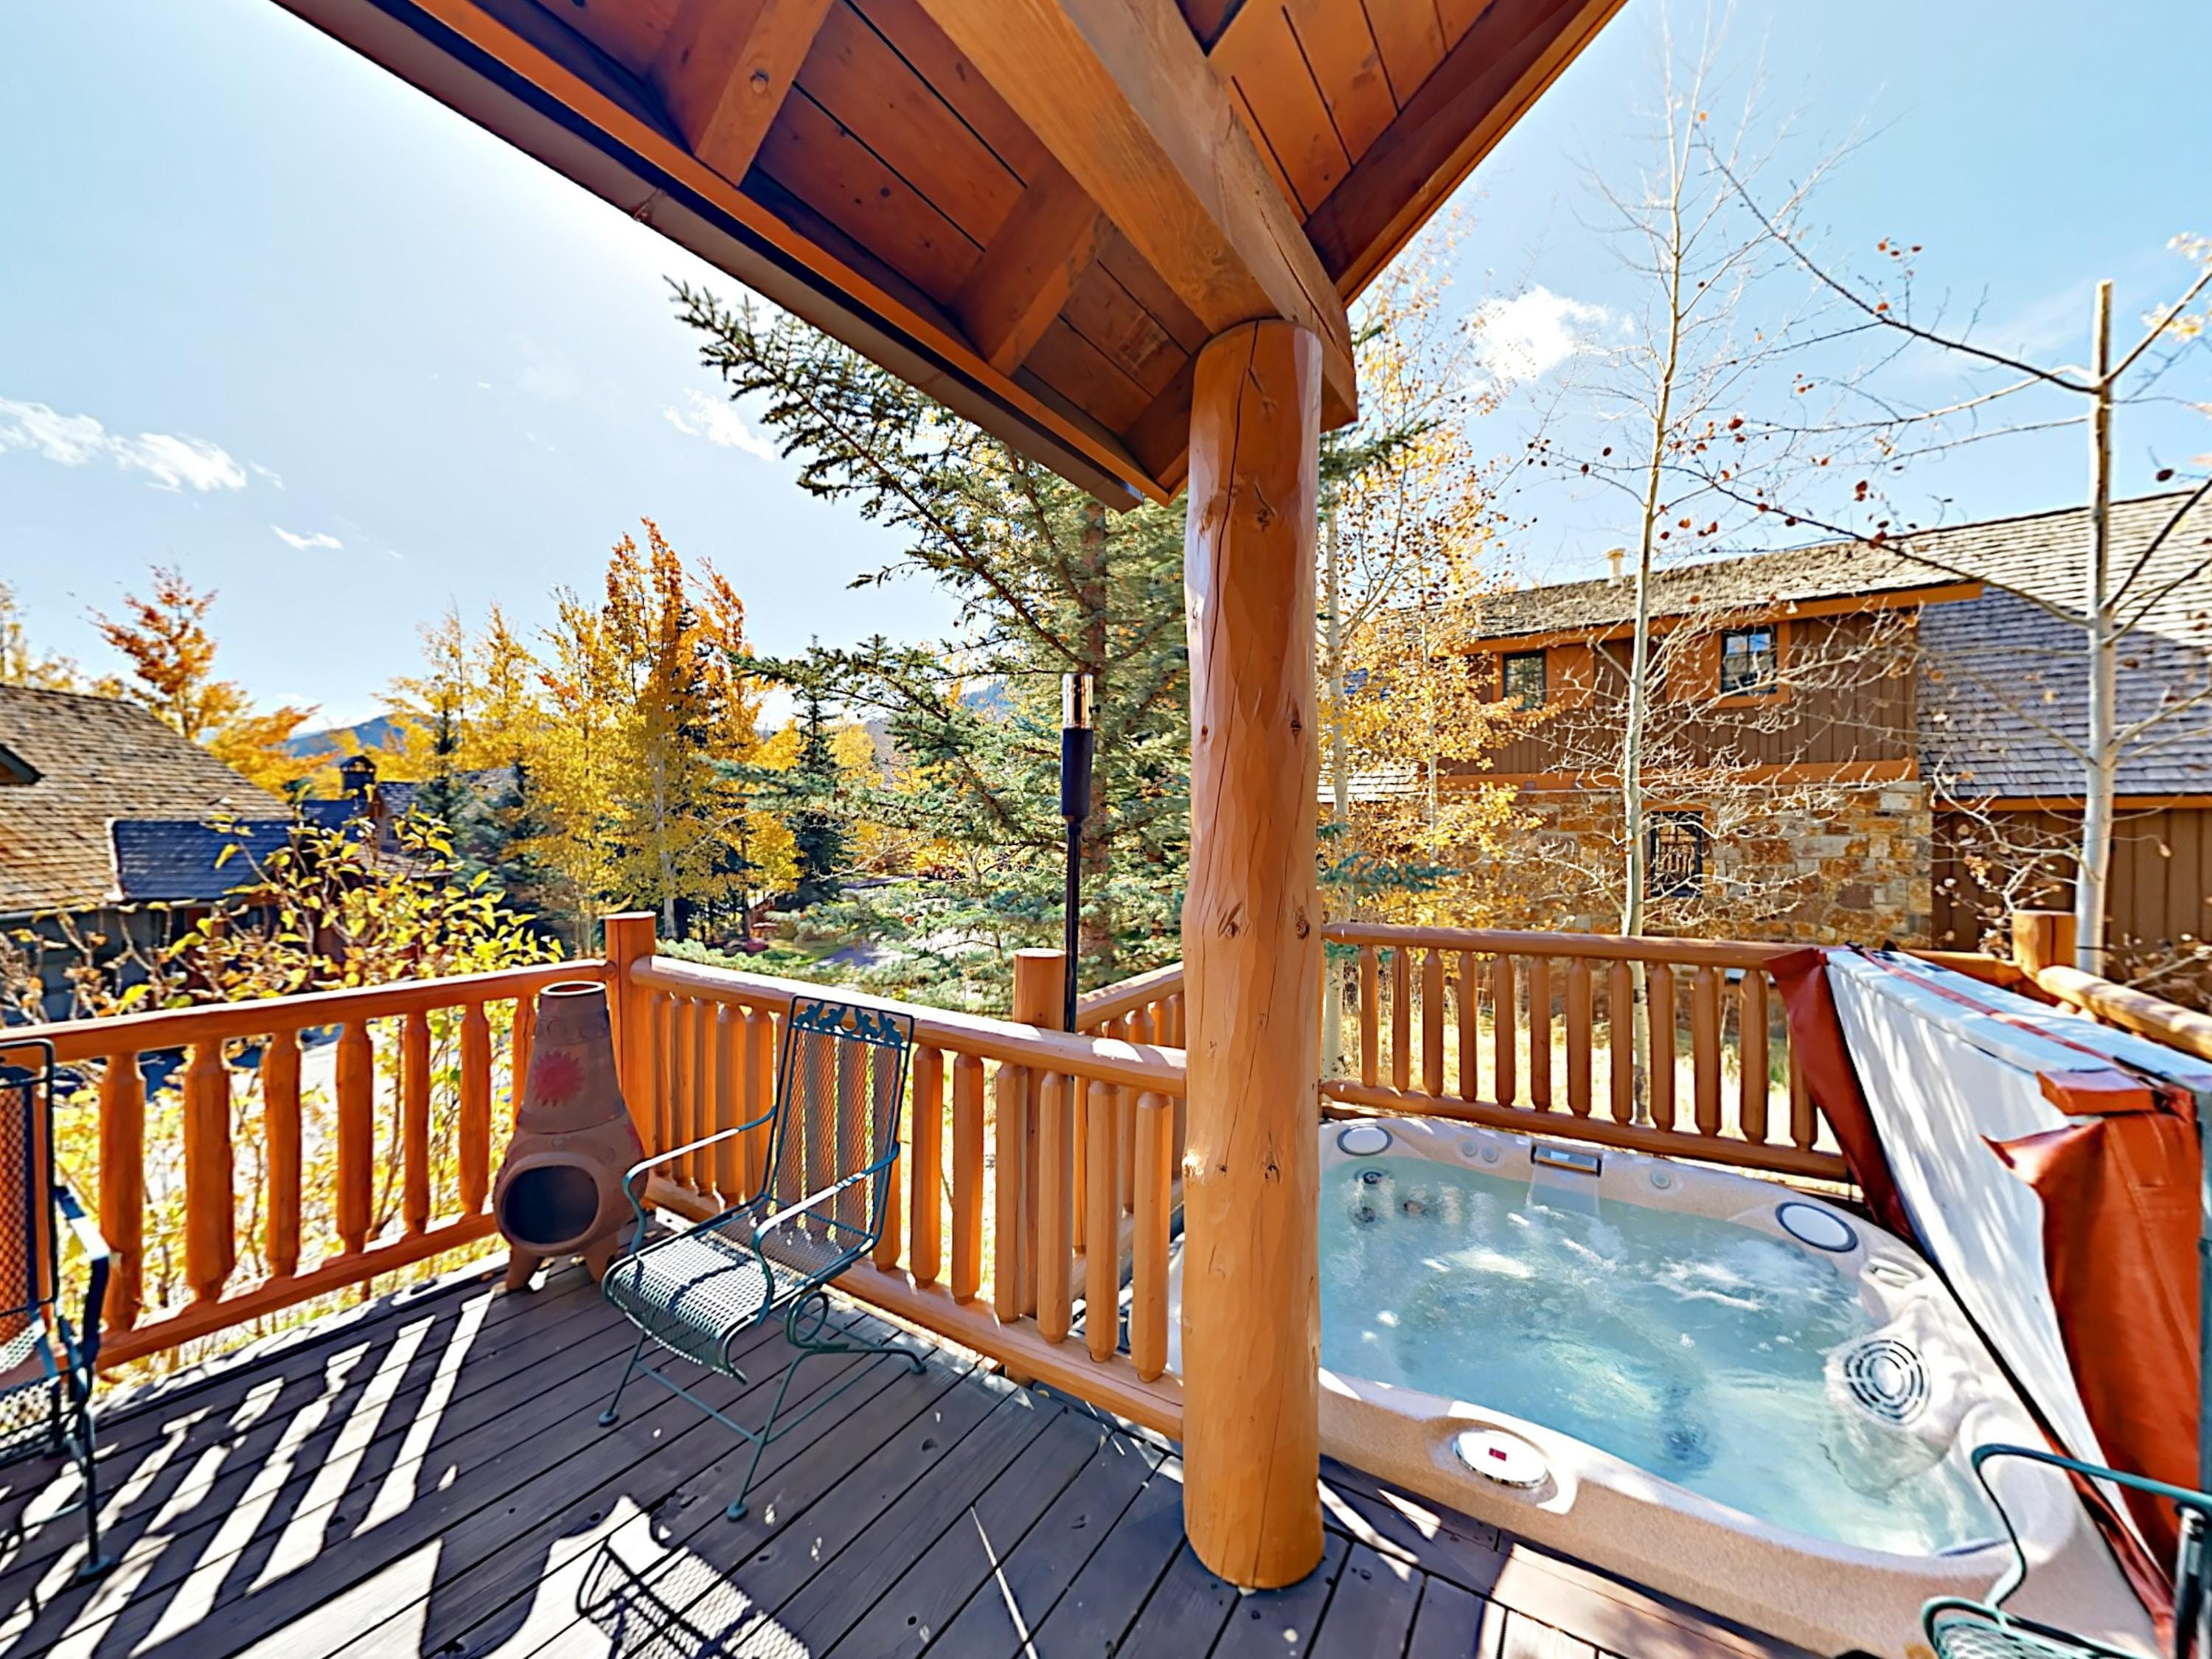 After a day of alpine adventures, enjoy a soak in your private hot tub.